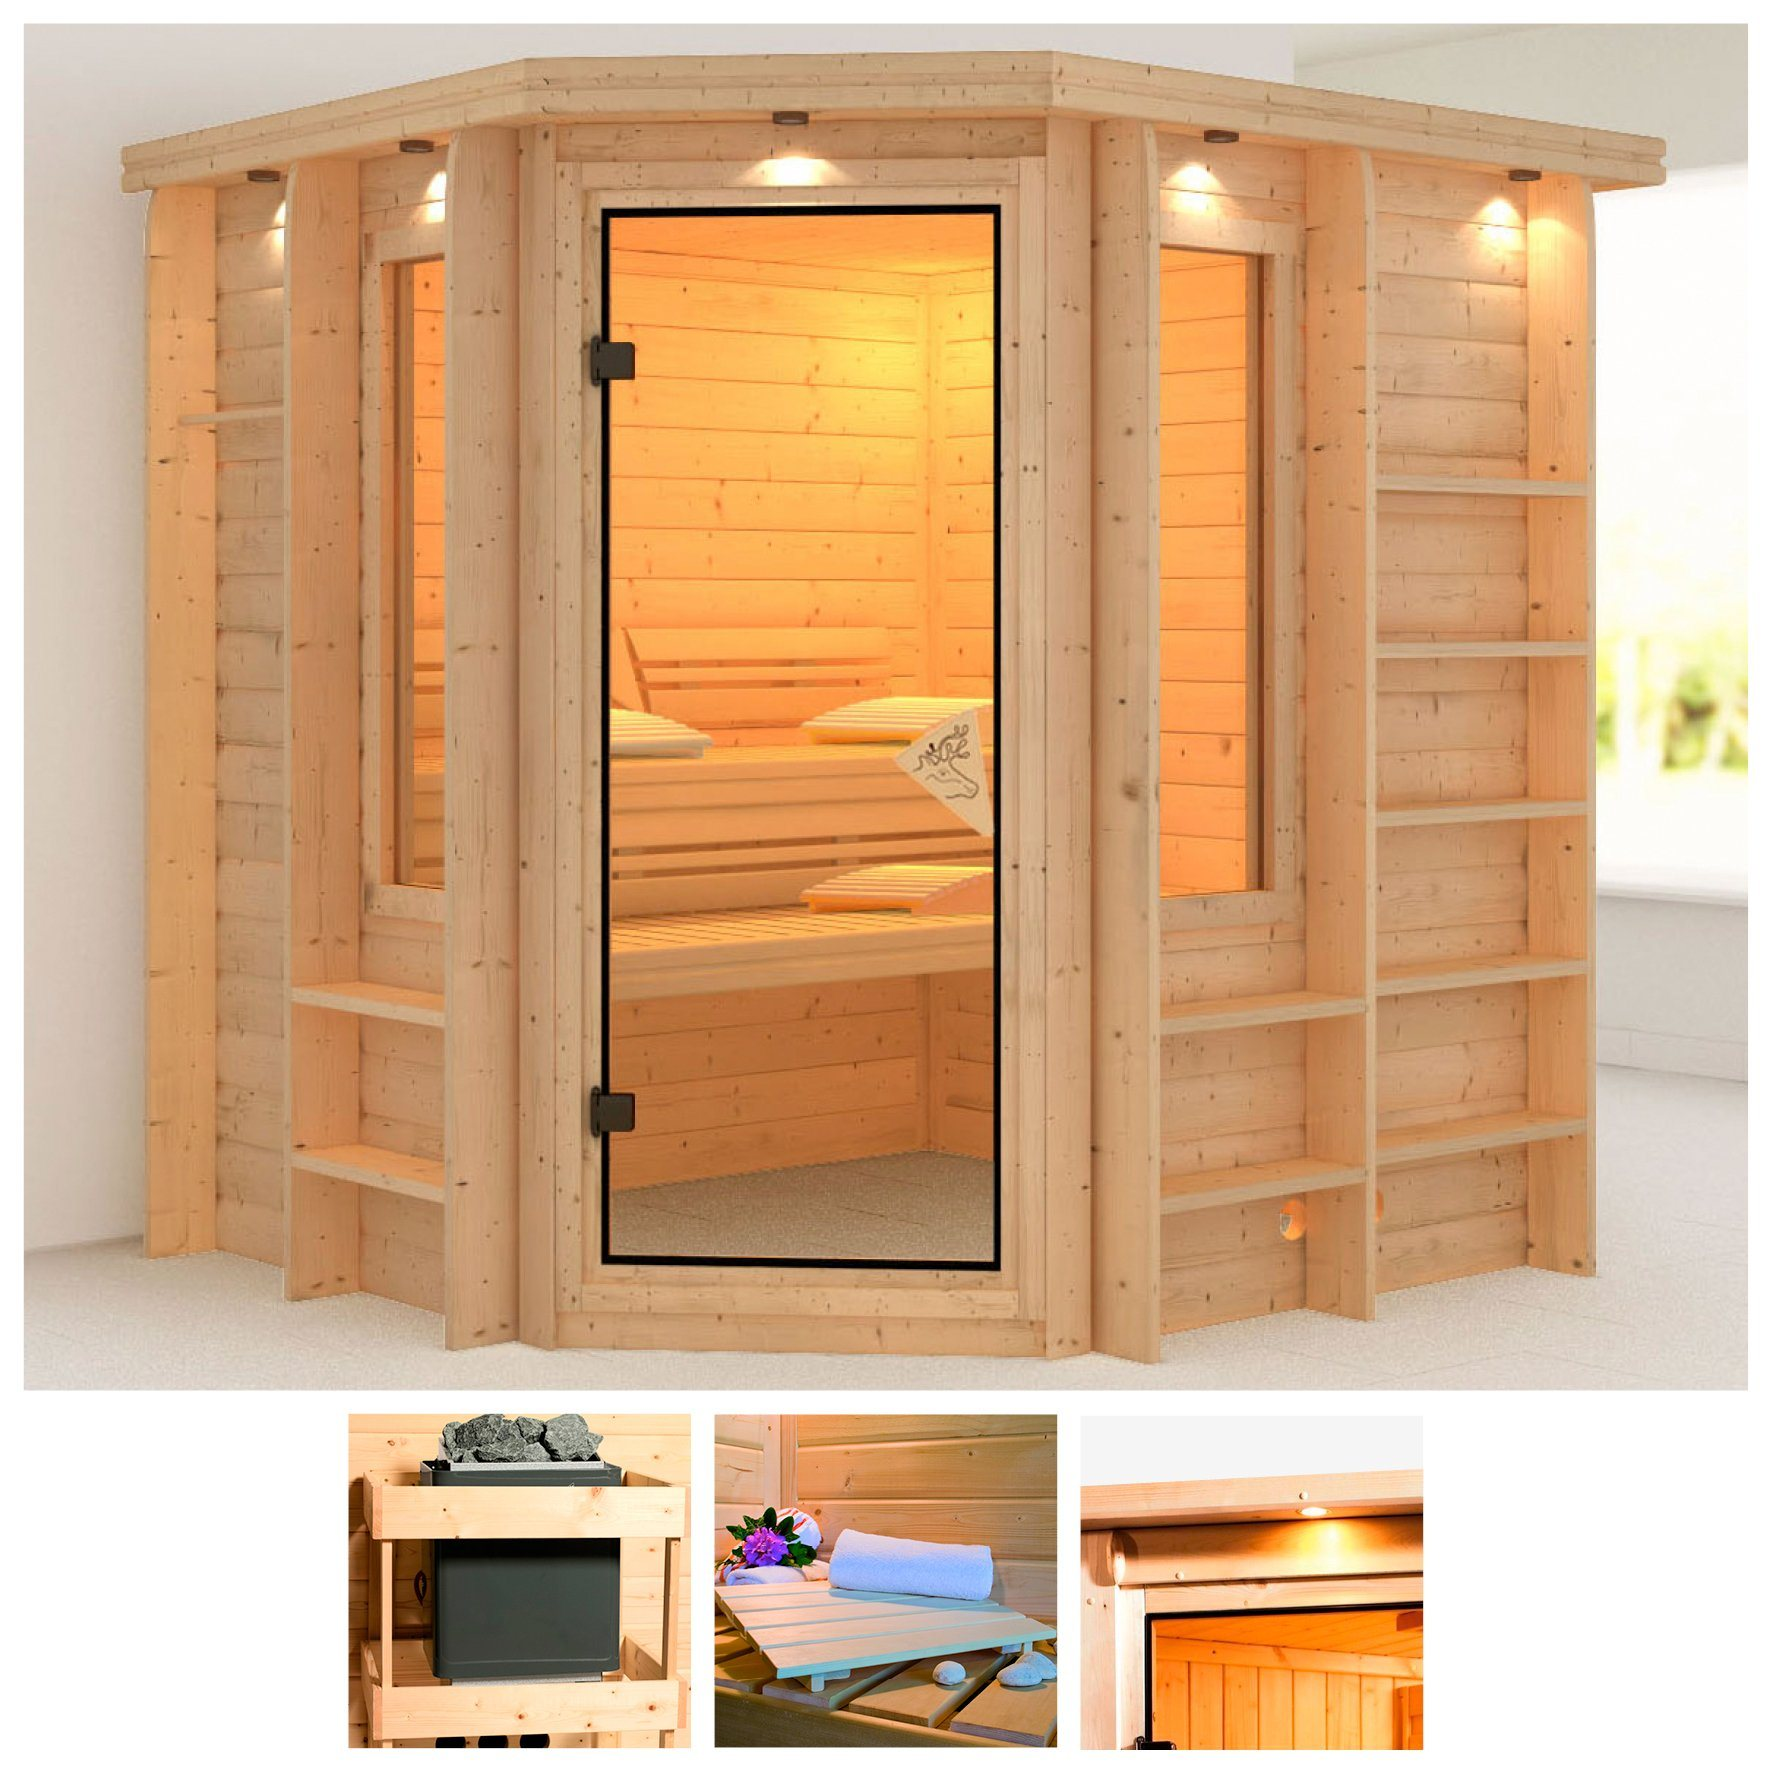 sauna online kaufen karibu inka mit with sauna online. Black Bedroom Furniture Sets. Home Design Ideas